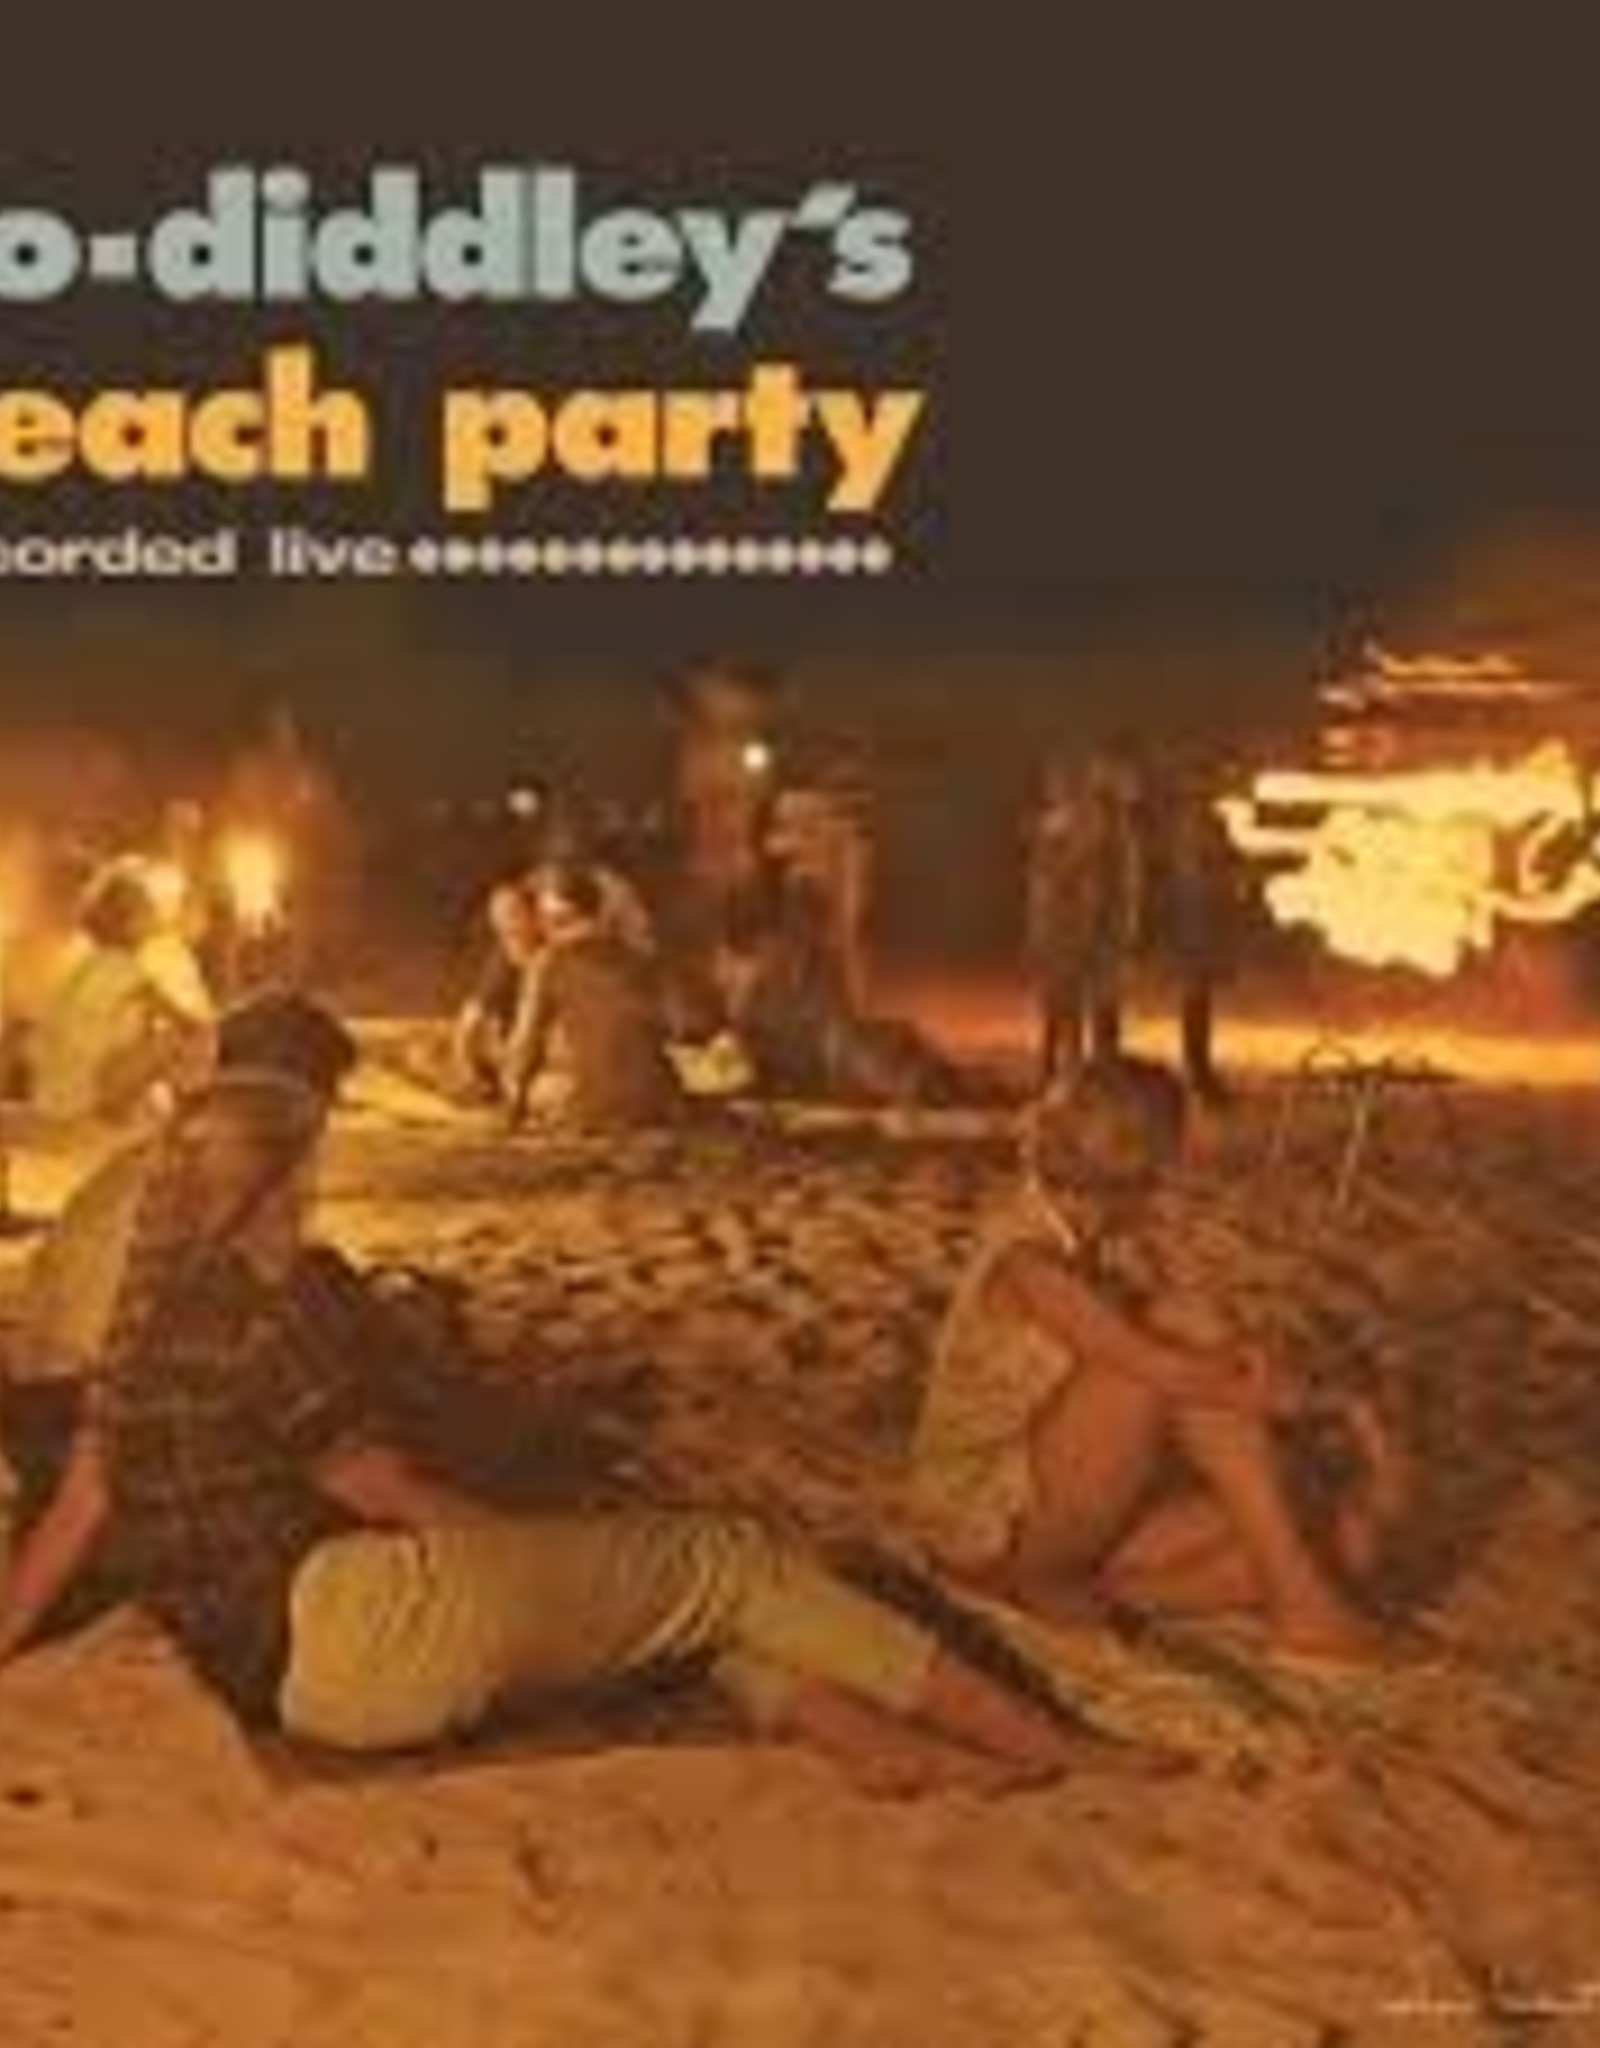 Bo Diddley - bo-diddley's beach party (live)